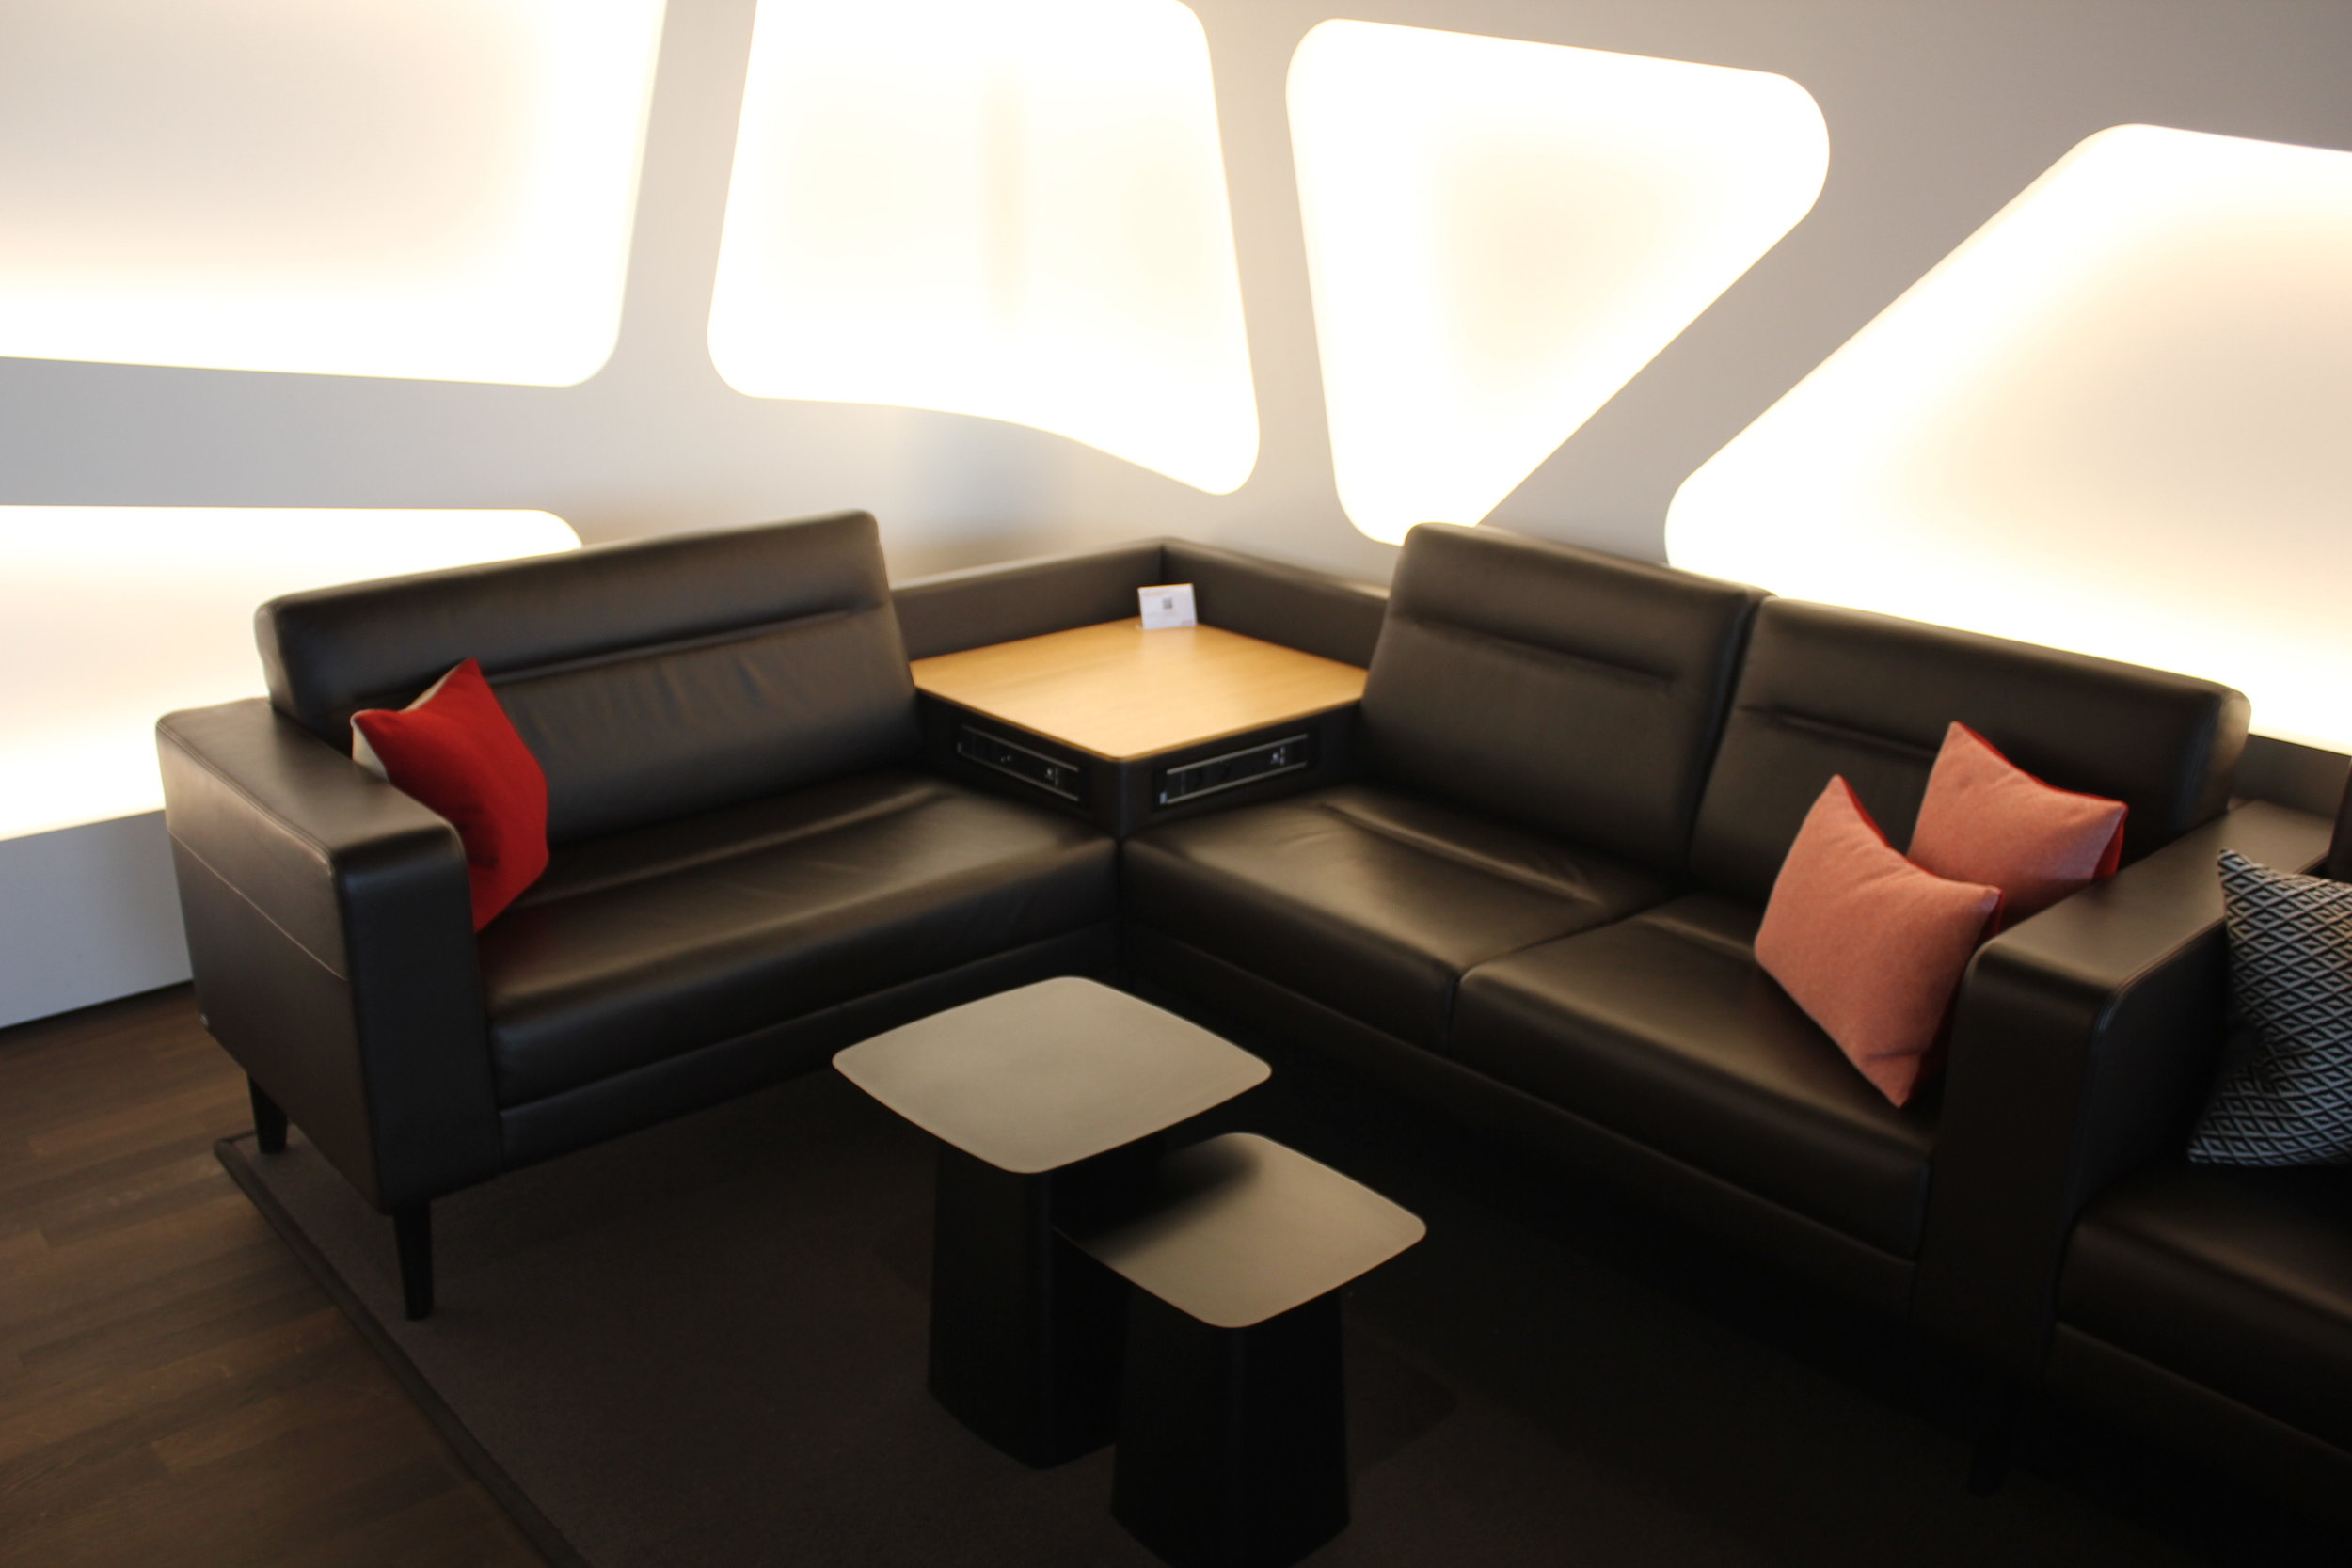 Swiss Senator Lounge Zurich – Whisky Club couch